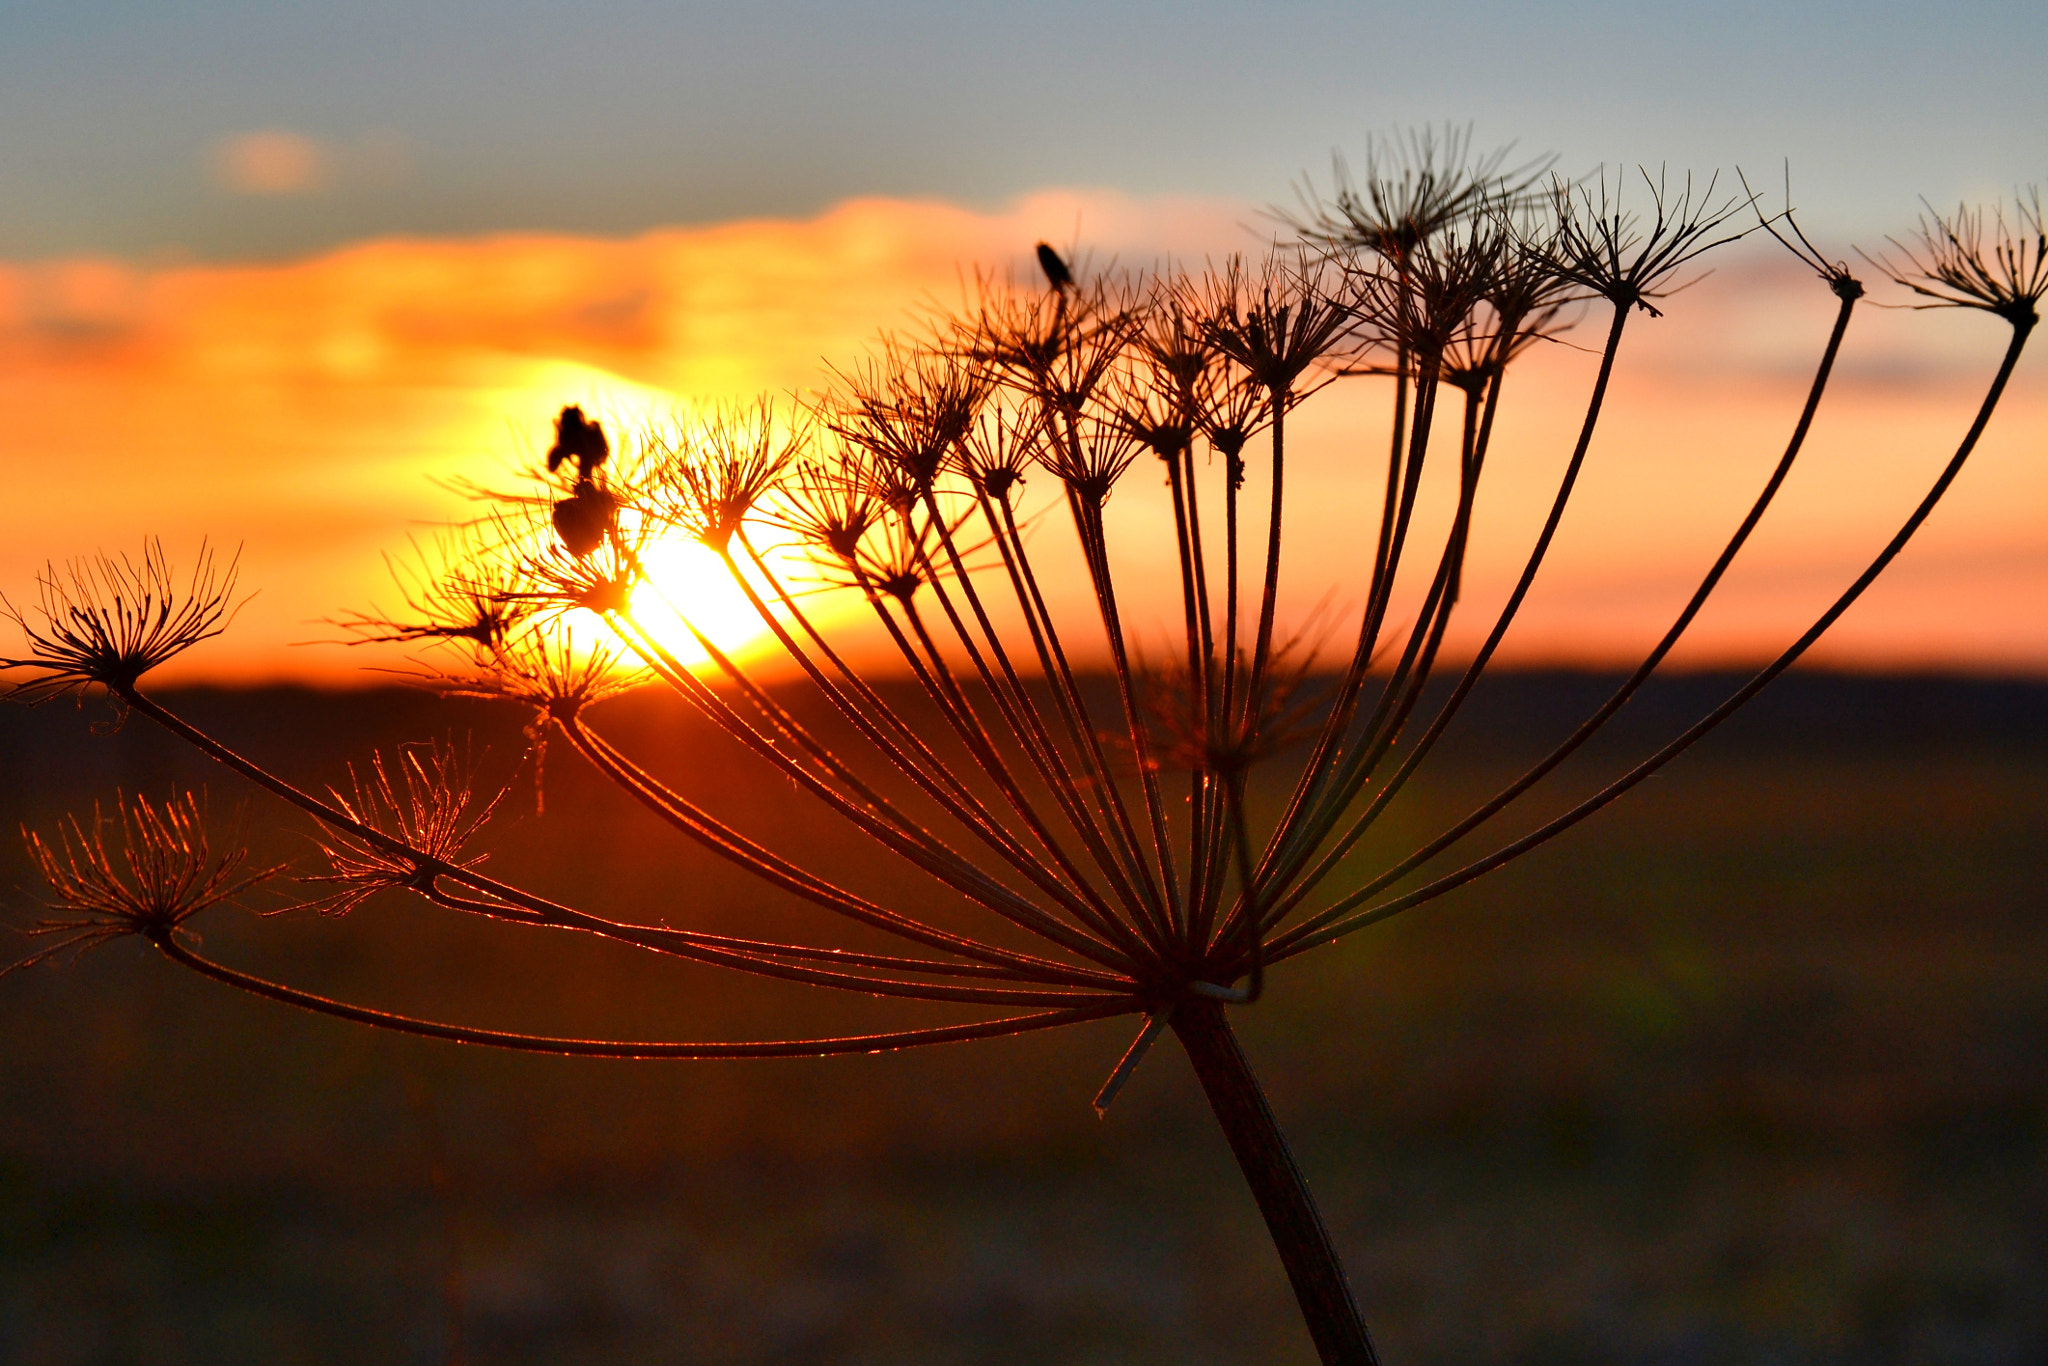 Photograph The sun November. by F plusO on 500px